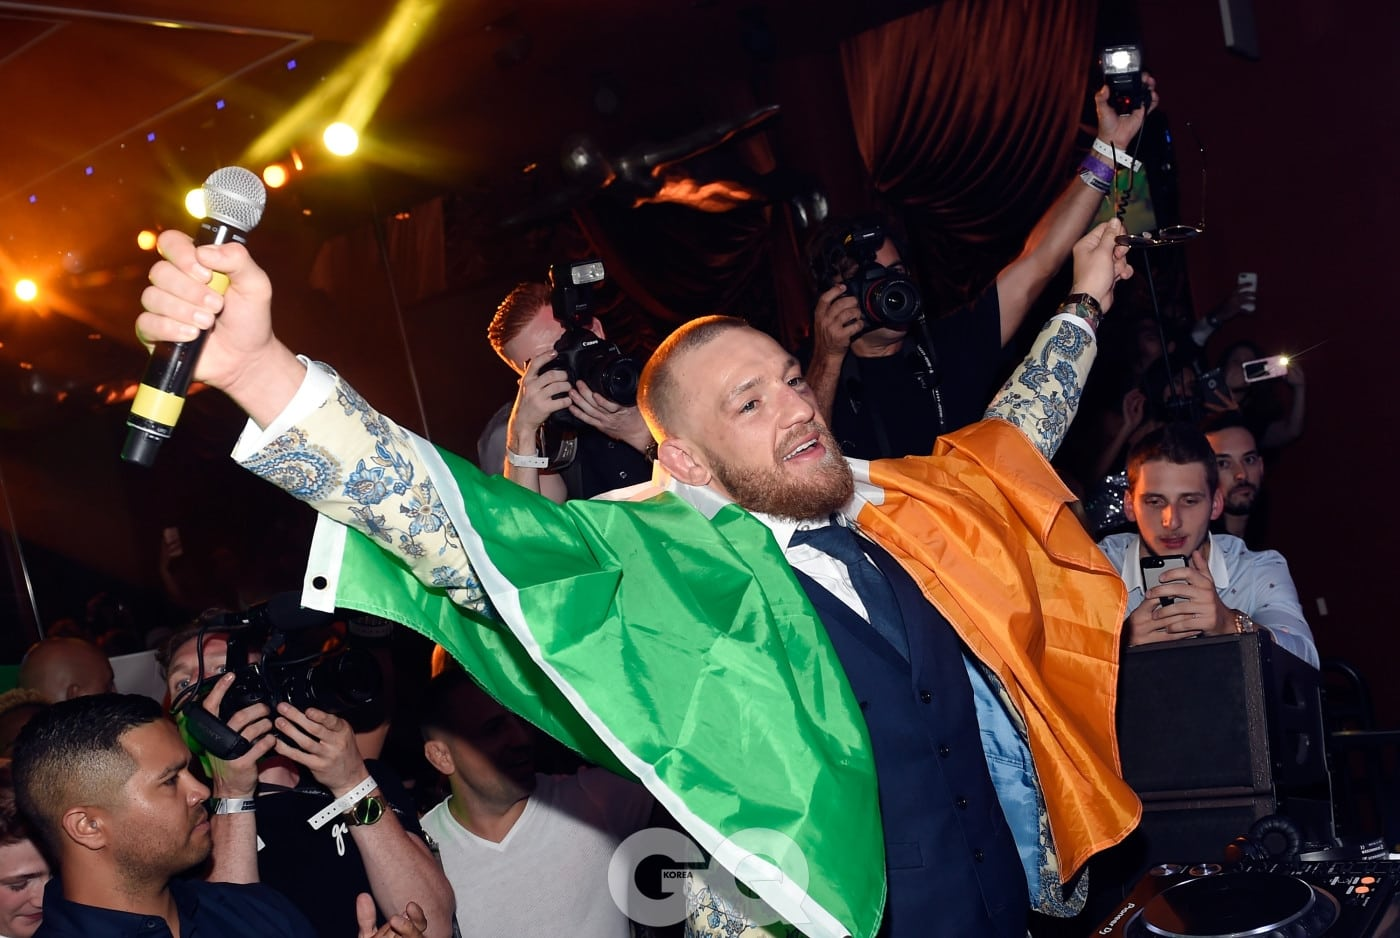 LAS VEGAS, NV - AUGUST 27:  Conor McGregor attends his after fight party and his Wynn Nightlife residency debut at the Encore Beach Club at Night at Wynn Las Vegas on August 27, 2017 in Las Vegas, Nevada.  (Photo by David Becker/Getty Images for Wynn Nightlife)